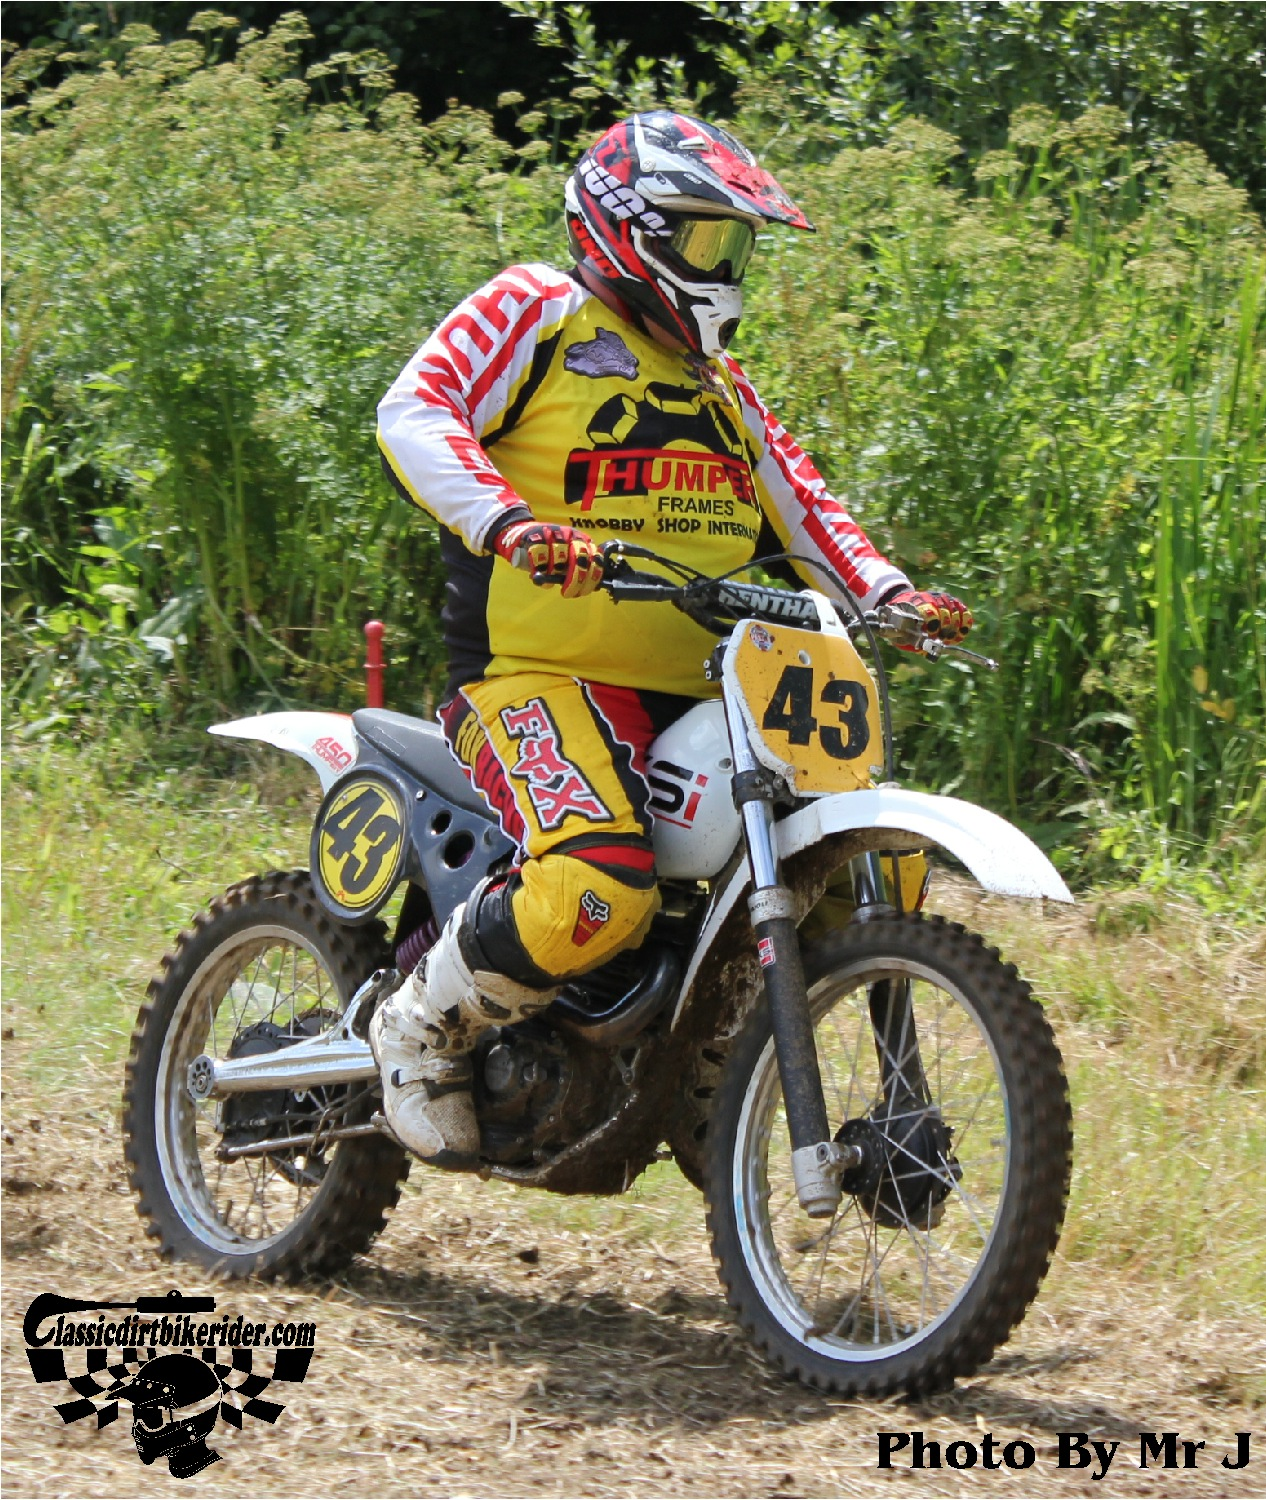 king of the castle 2015 photos Farleigh Castle twinshock motocross classicdirtbikerider.com 42